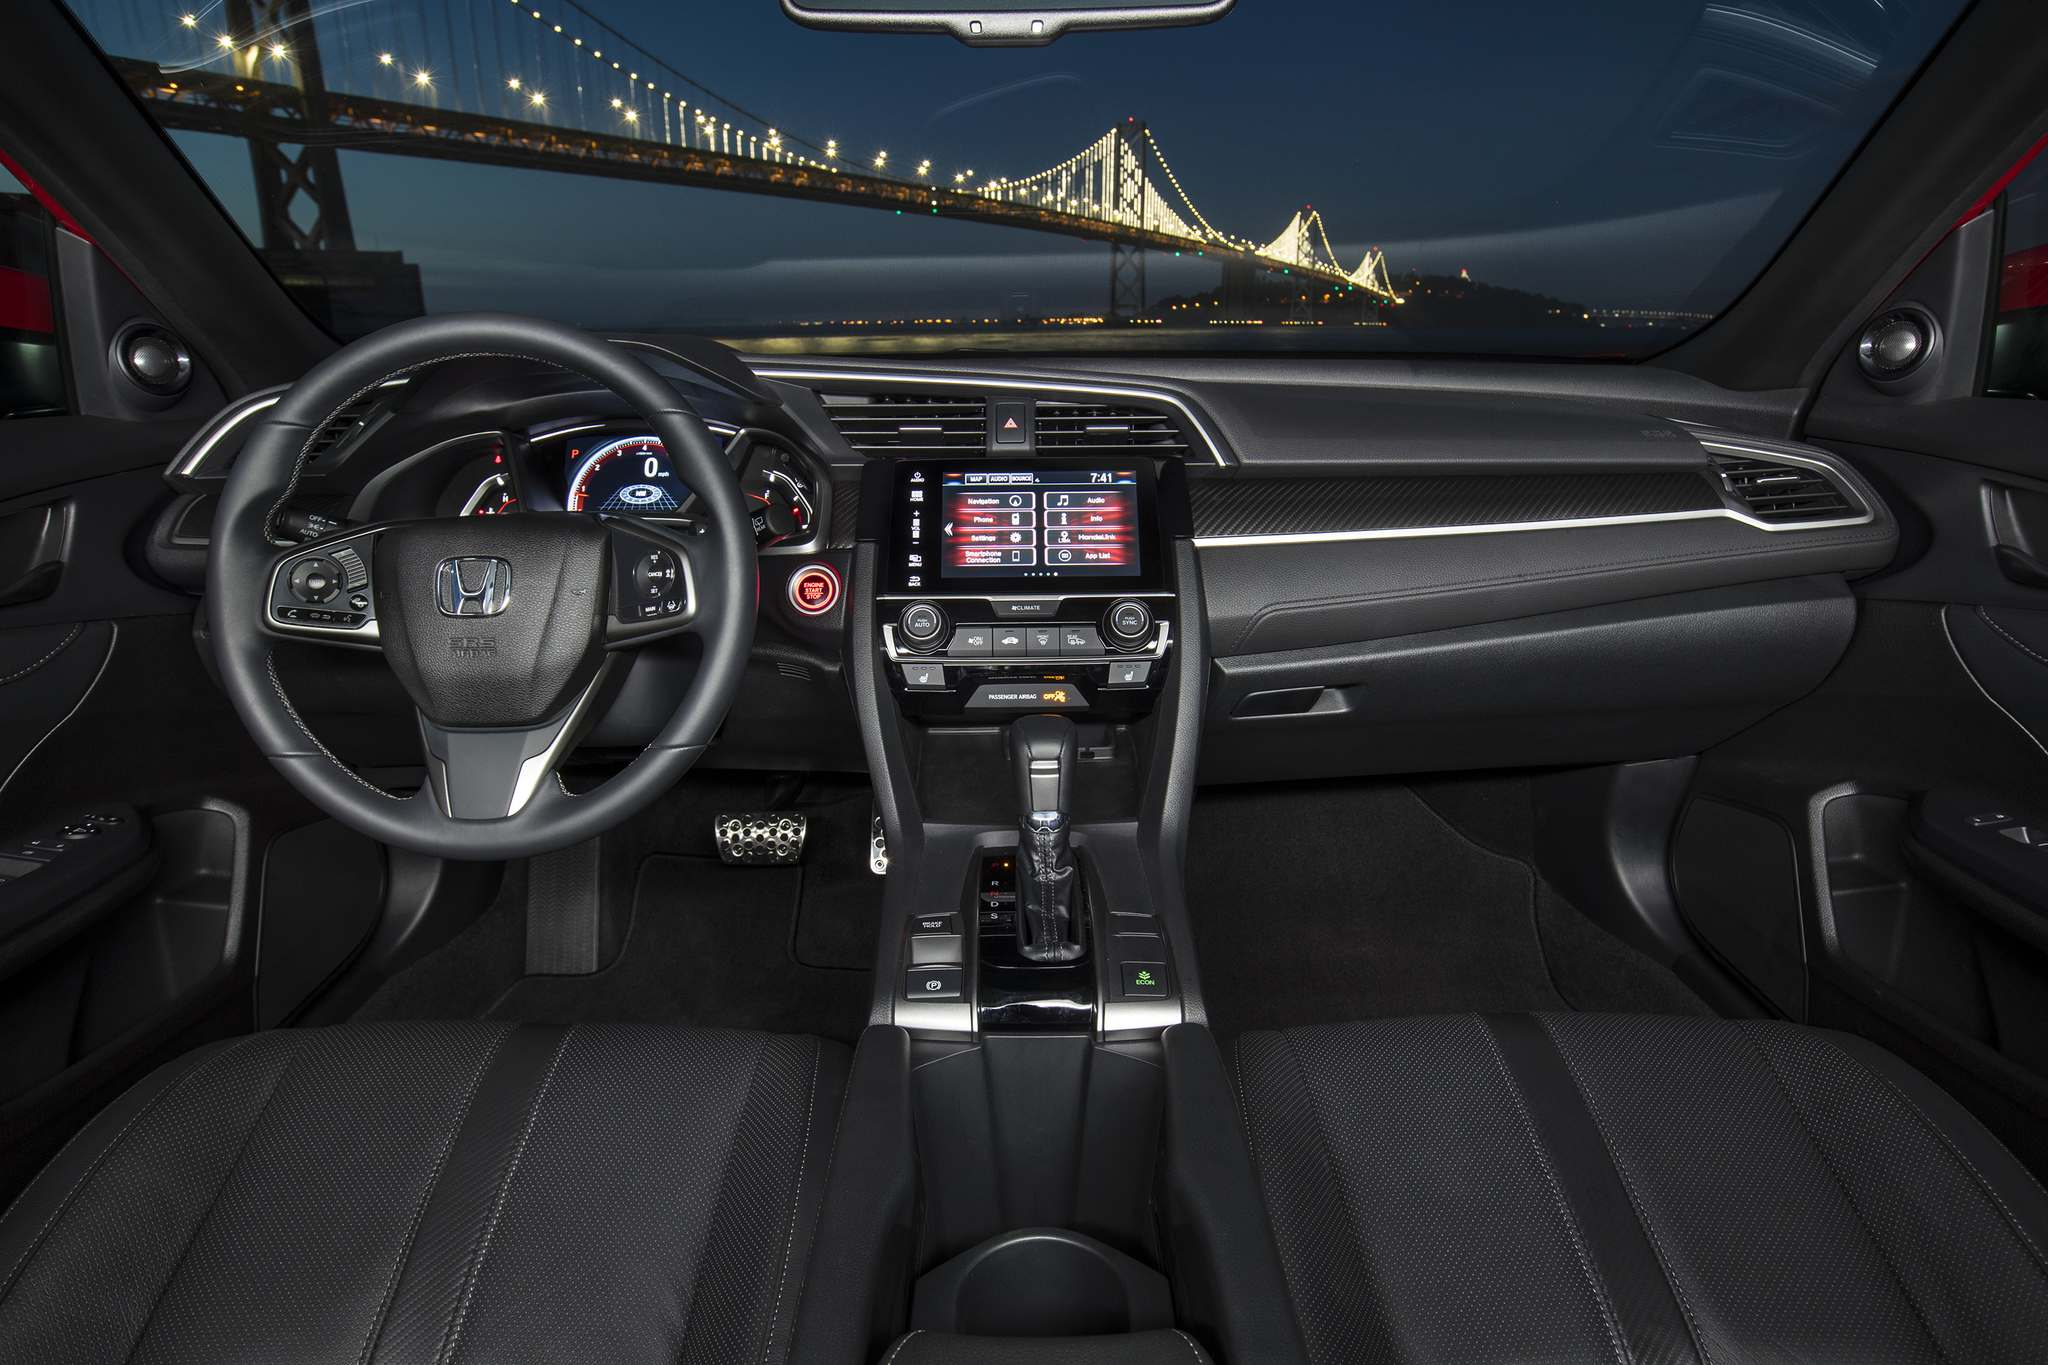 HondaThe interior of the 2017 Honda Civic Hatchback Sport Touring has a logical control layout and tasteful treatments of the upholstery and trim.